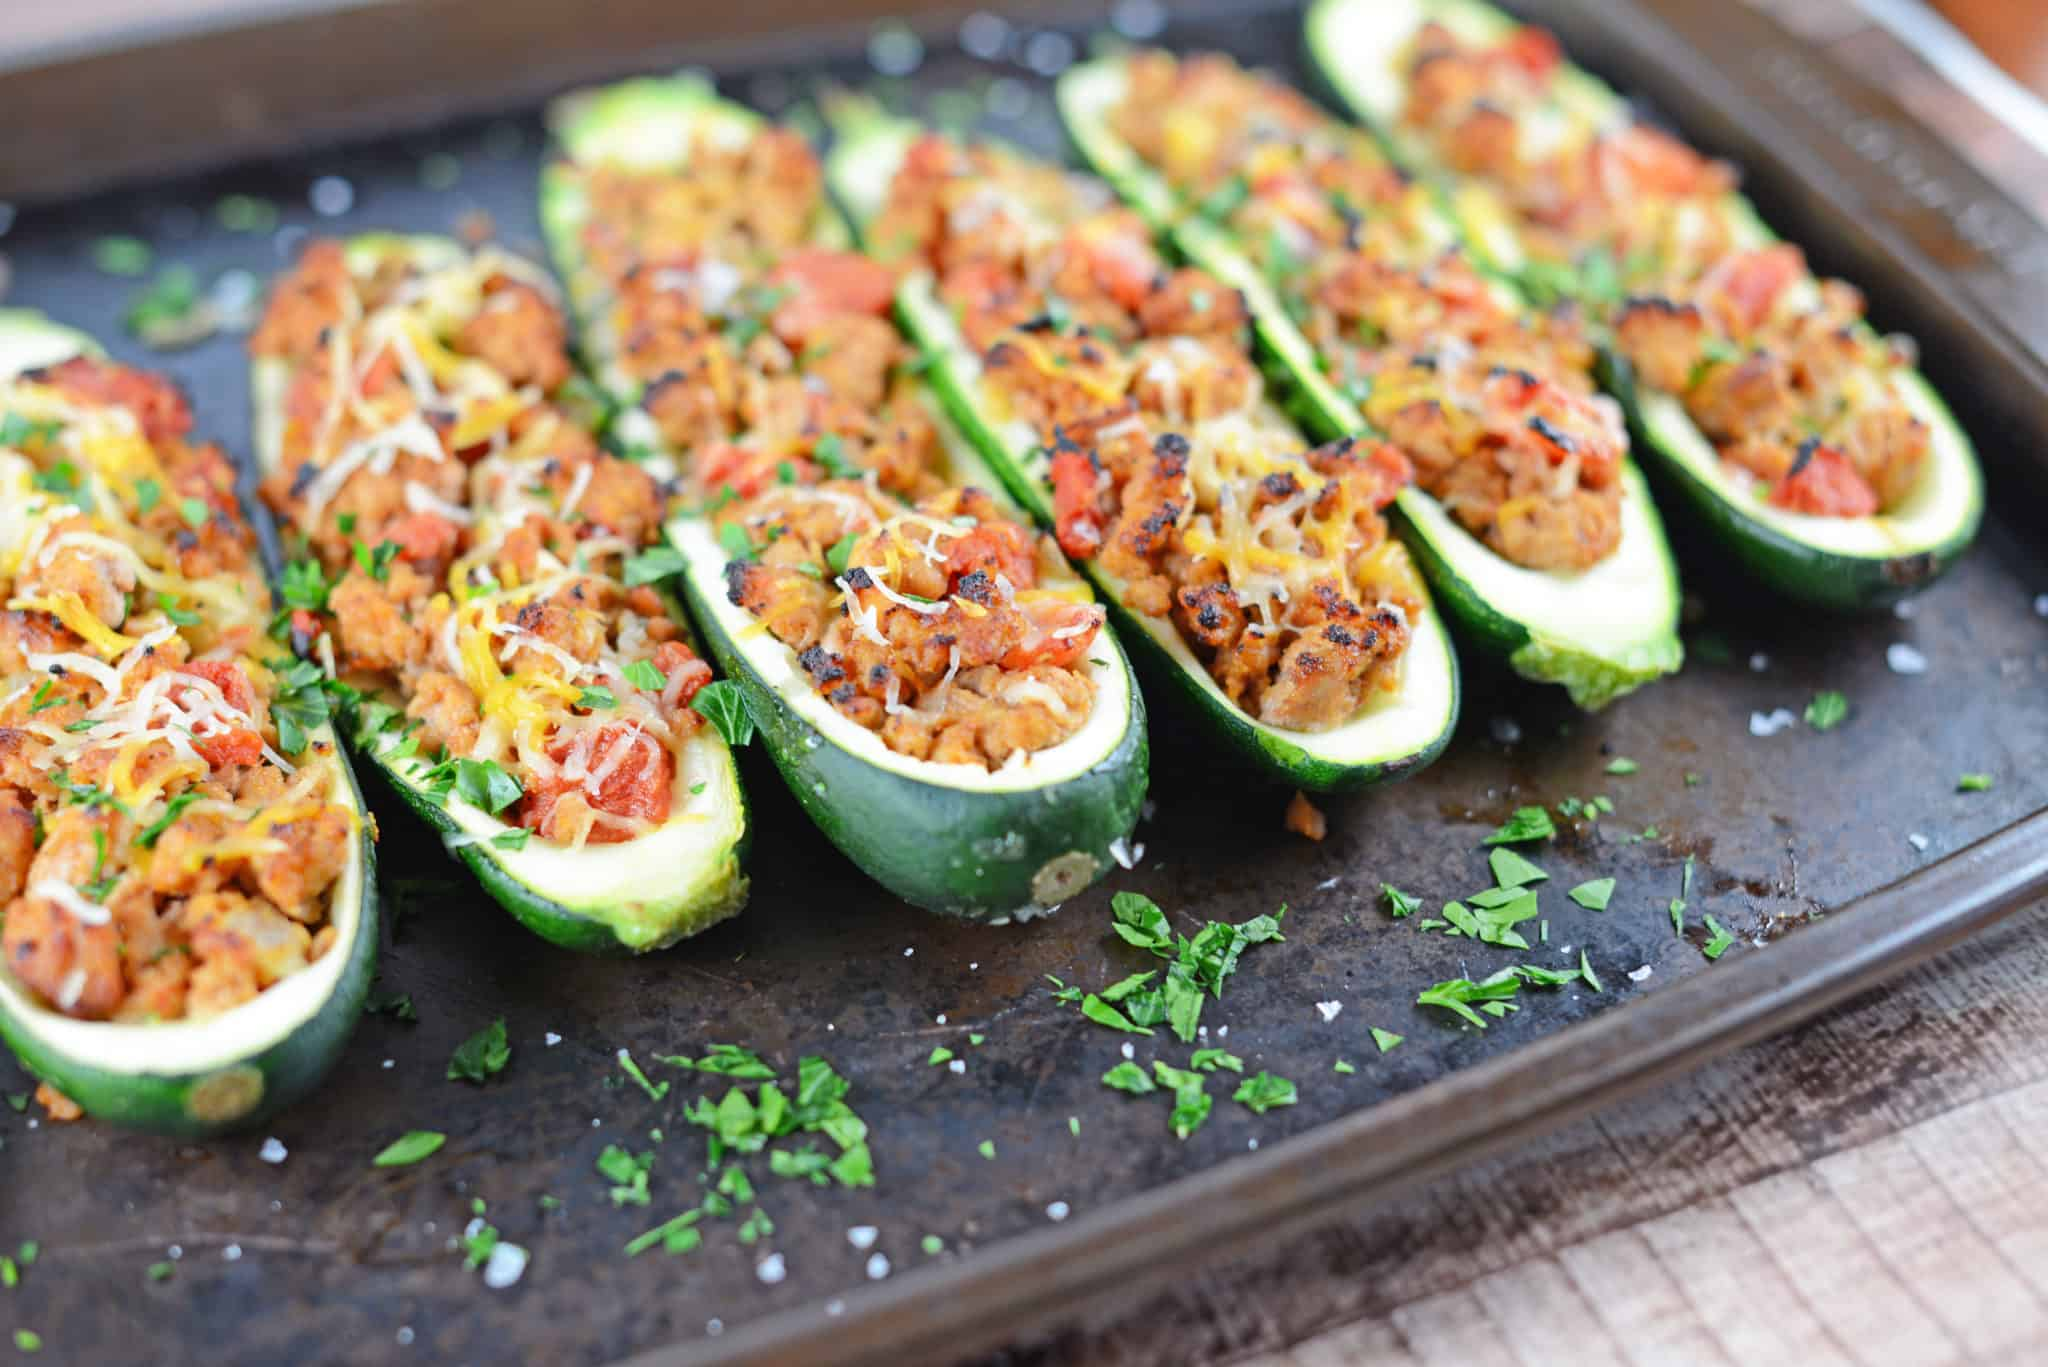 Why Should You Make Grilled Turkey Zucchini Boats?